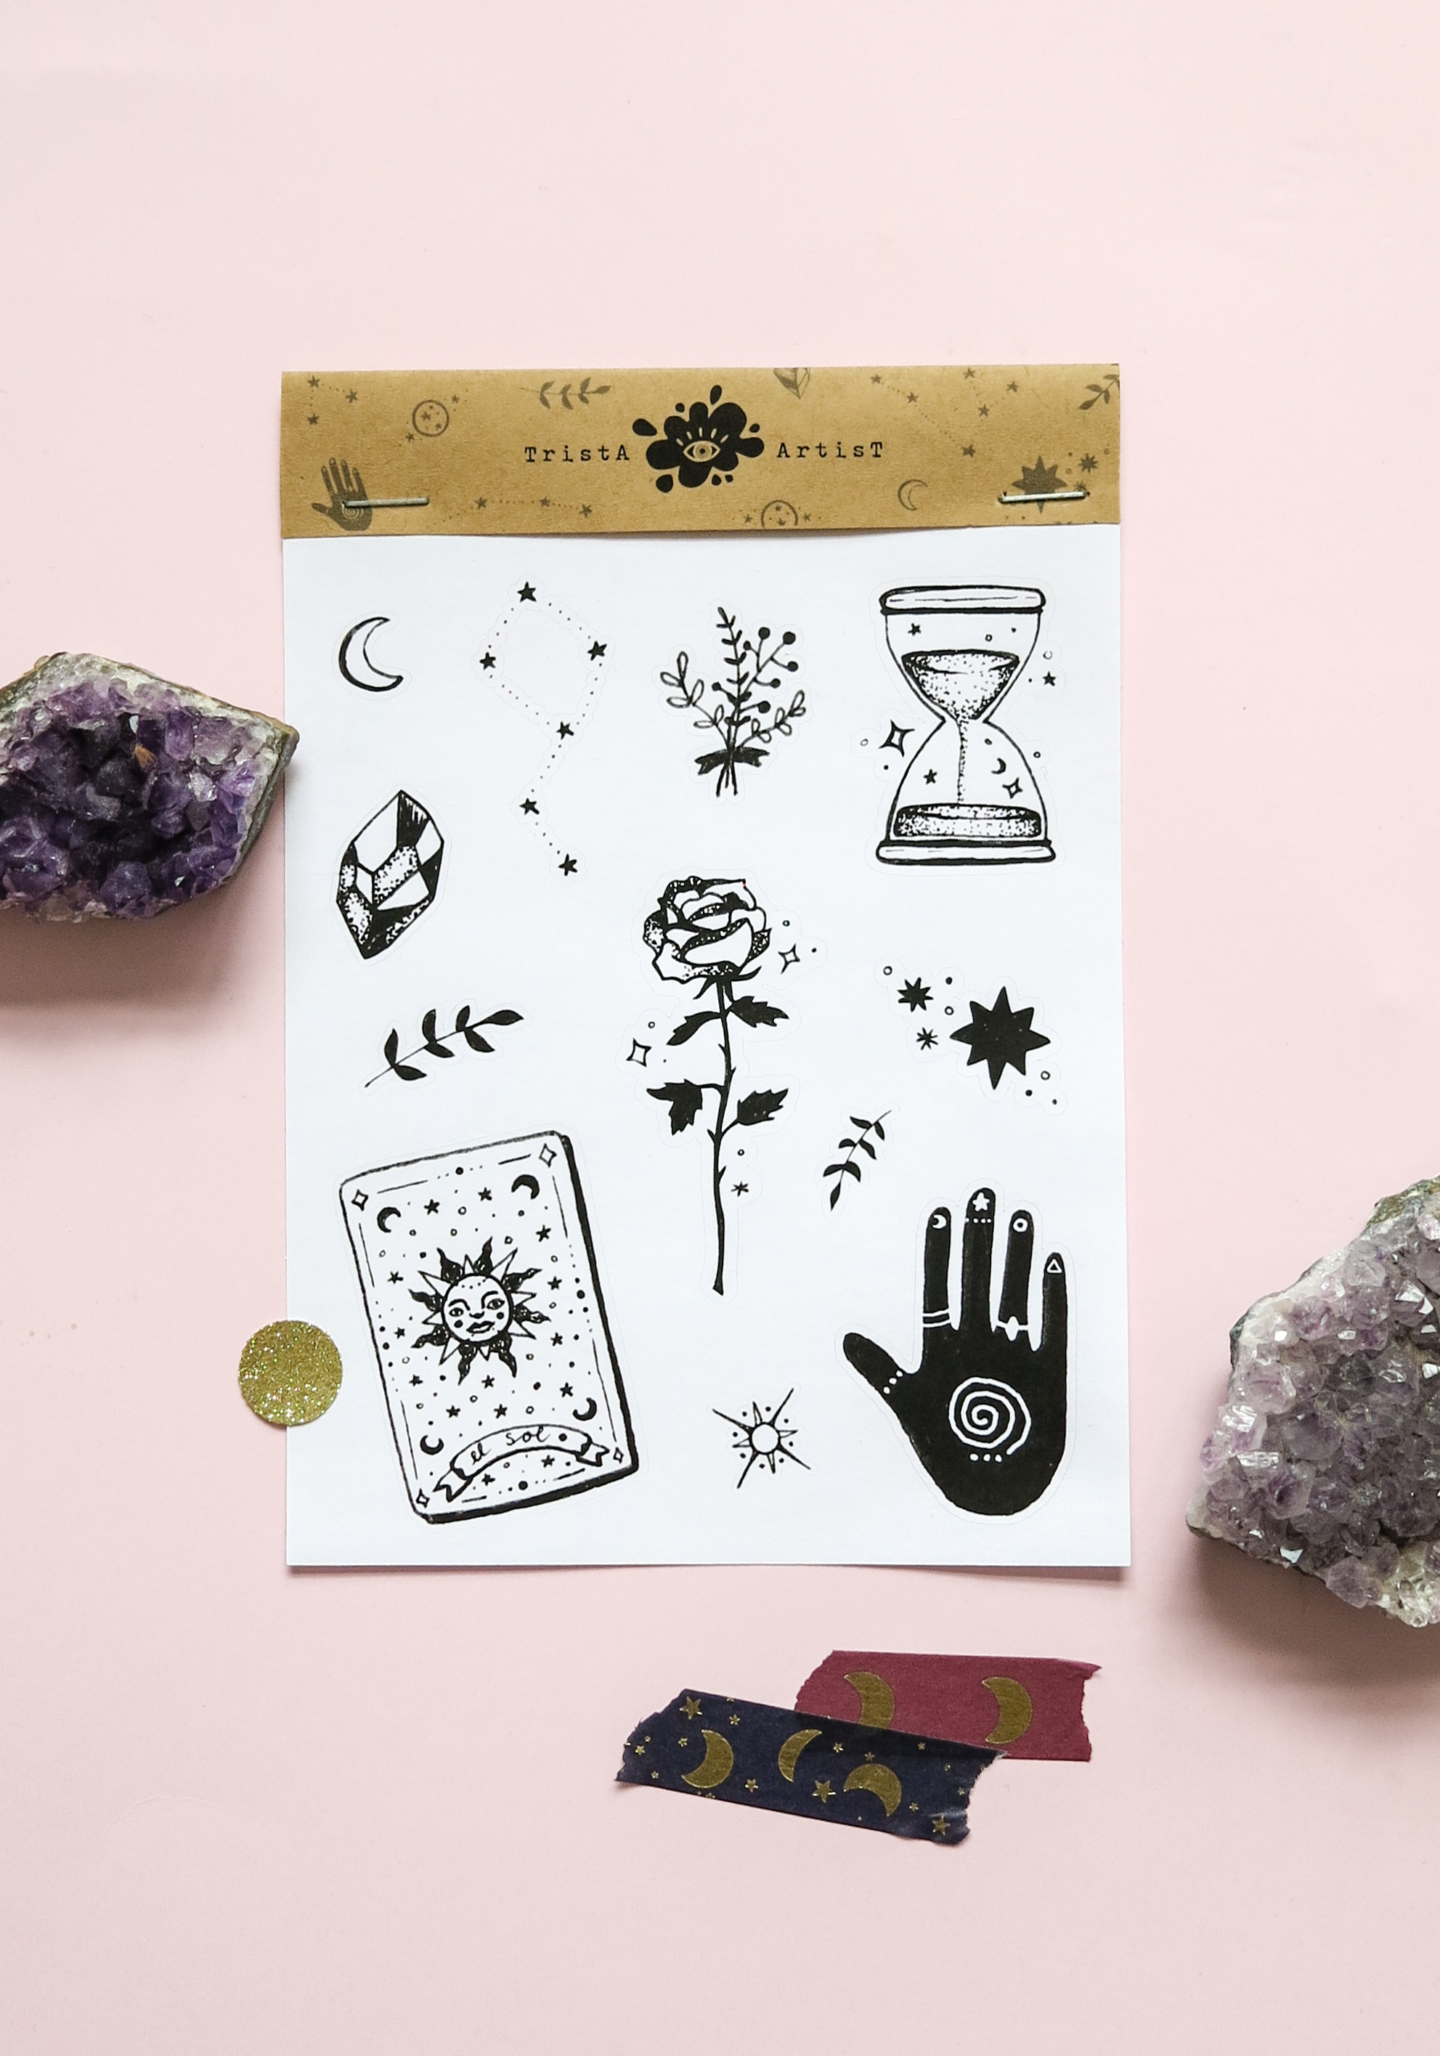 New ★ Fortune Teller Bullet Journal Planner Stickers